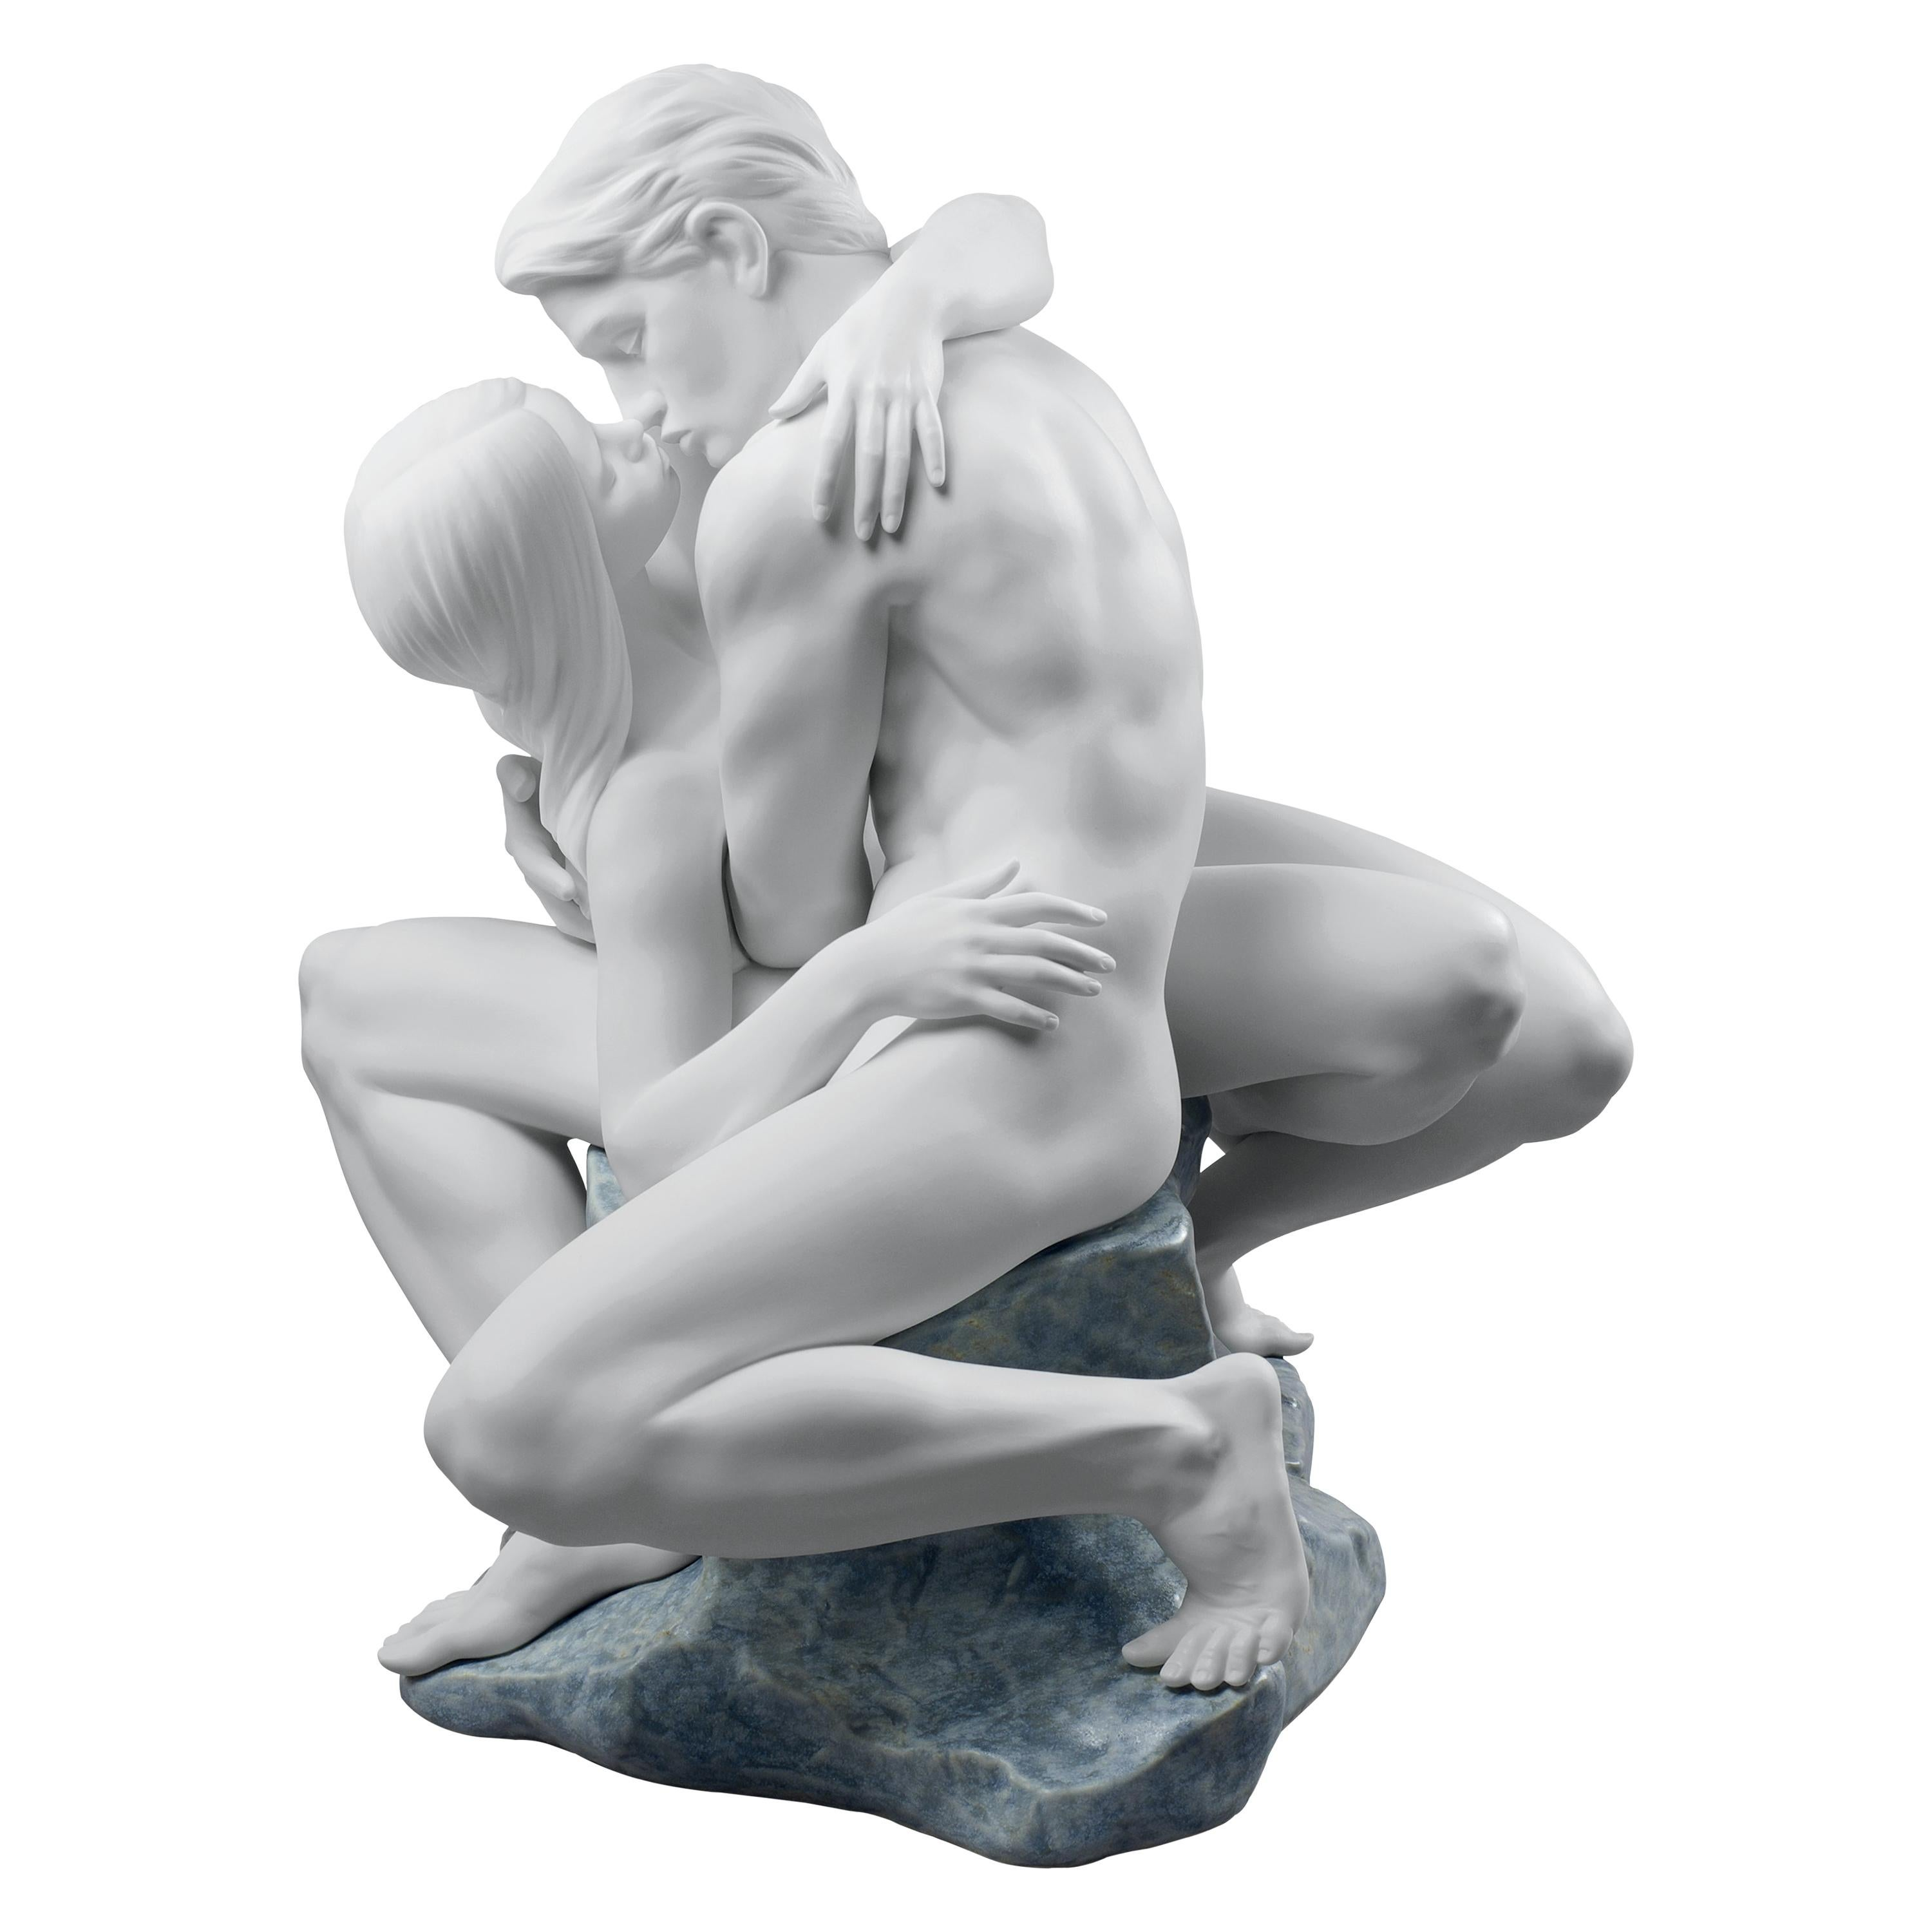 Lladro Passionate Kiss Couple Sculpture in White by José Luis Santes